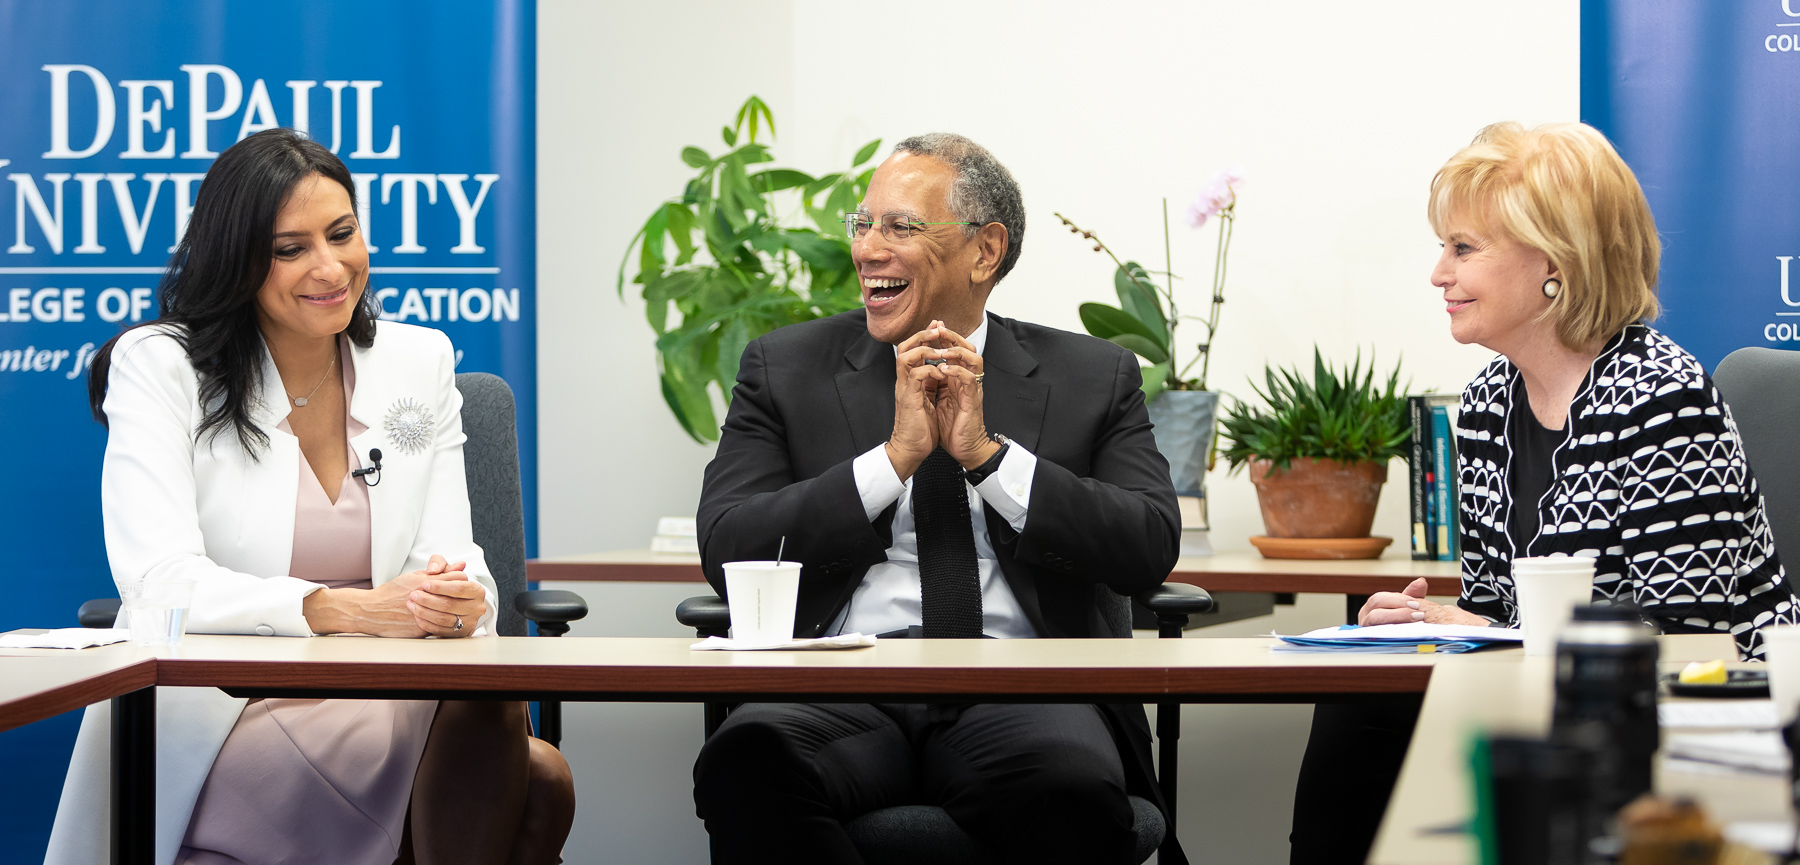 Left to right, Lourdes Duarte, investigative reporter, co-anchor, WGN News and a DePaul alumna, Dean Baquet, executive editor, The New York Times, and Carol Marin, co-director of the Center for Journalism Integrity and Excellence at a meeting with College of Communications journalism students. (DePaul University/Jeff Carrion)